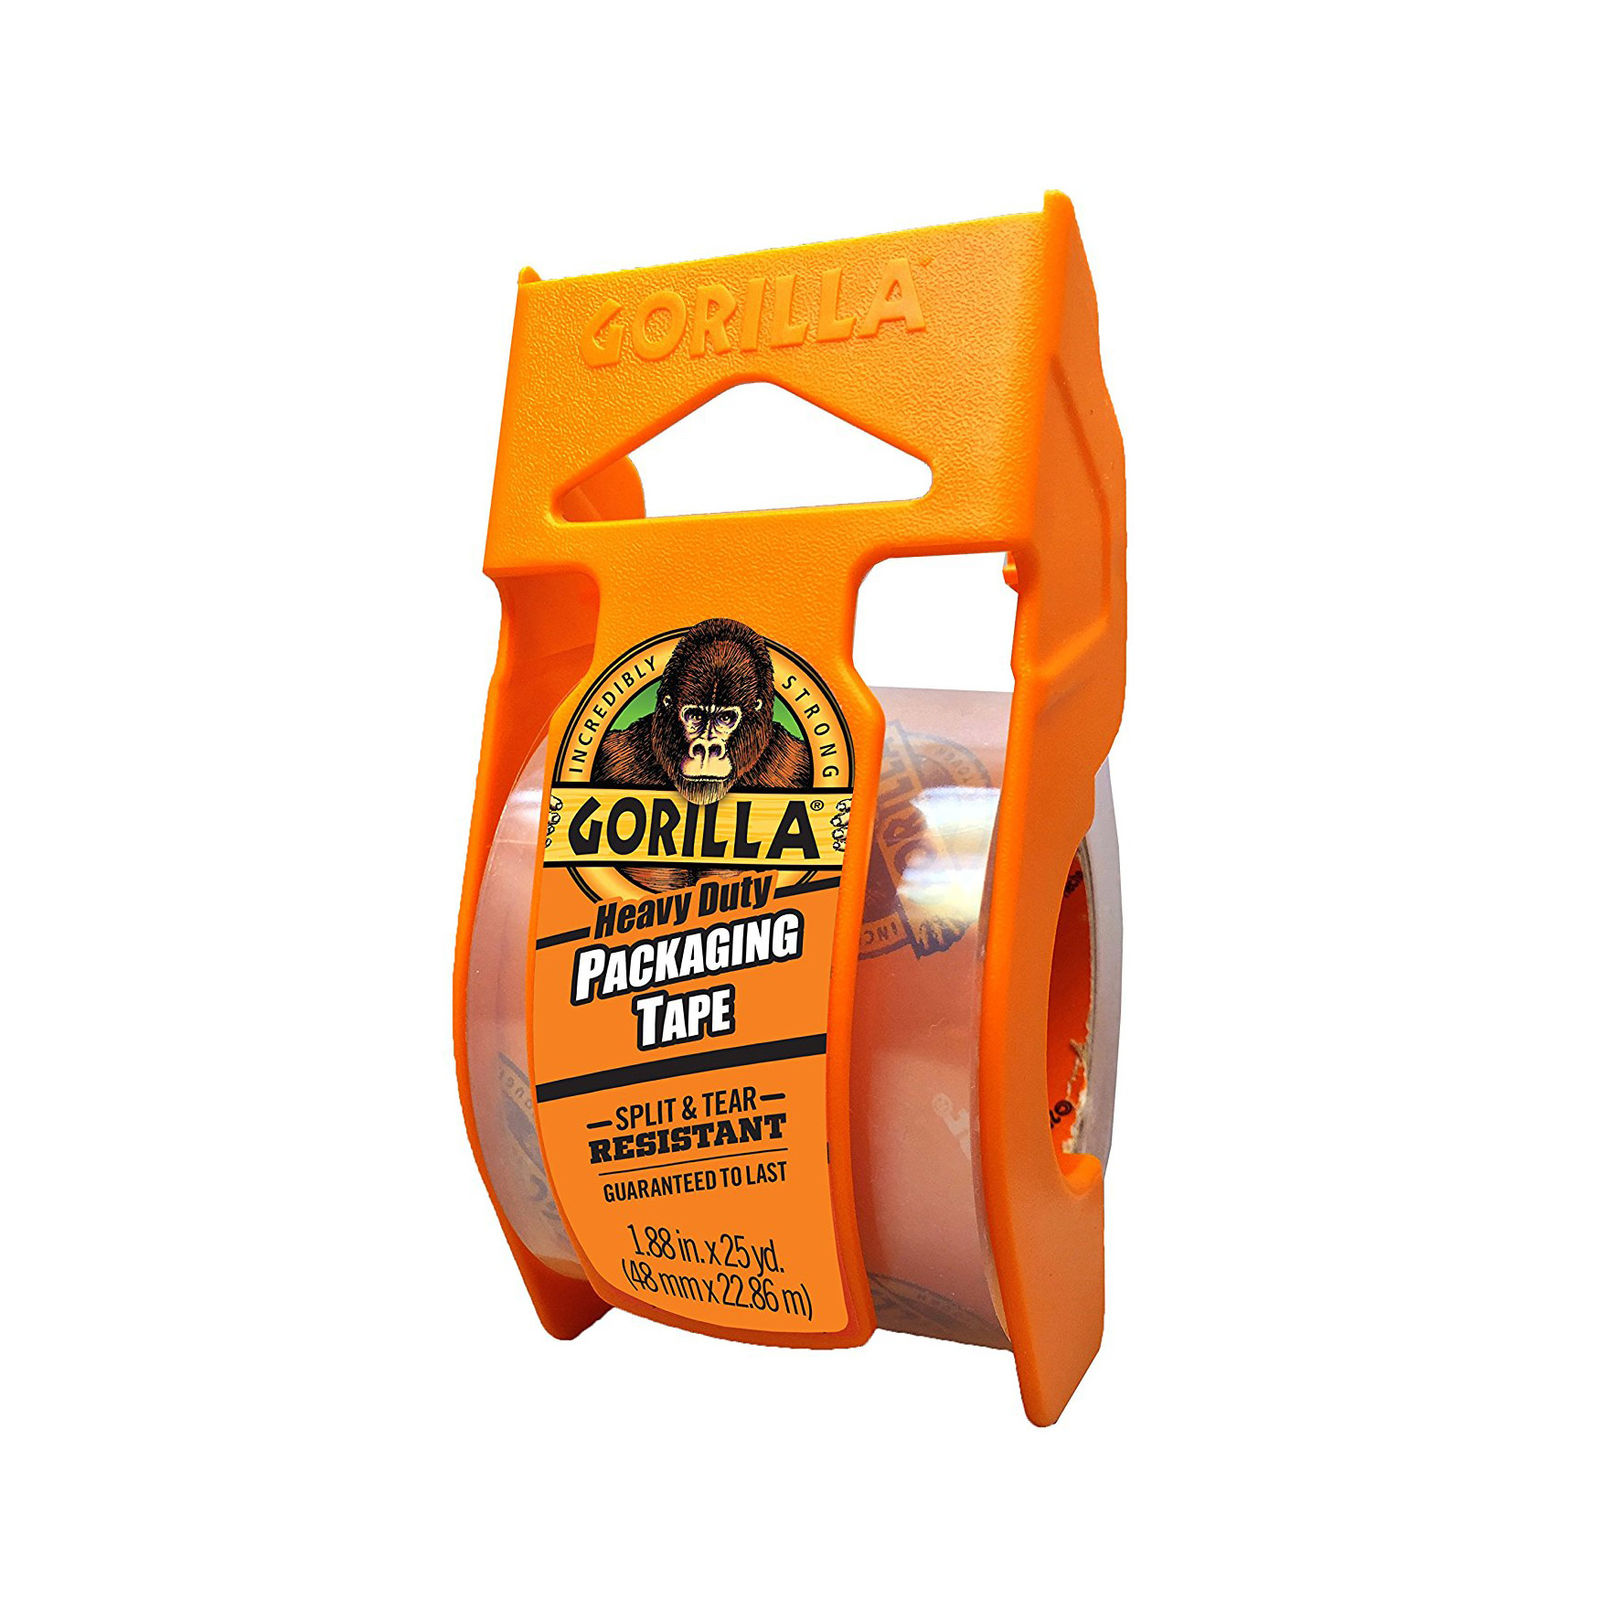 "Gorilla Heavy Duty Packing Tape with Dispenser, 1.88"" x 25 yd, Clear"